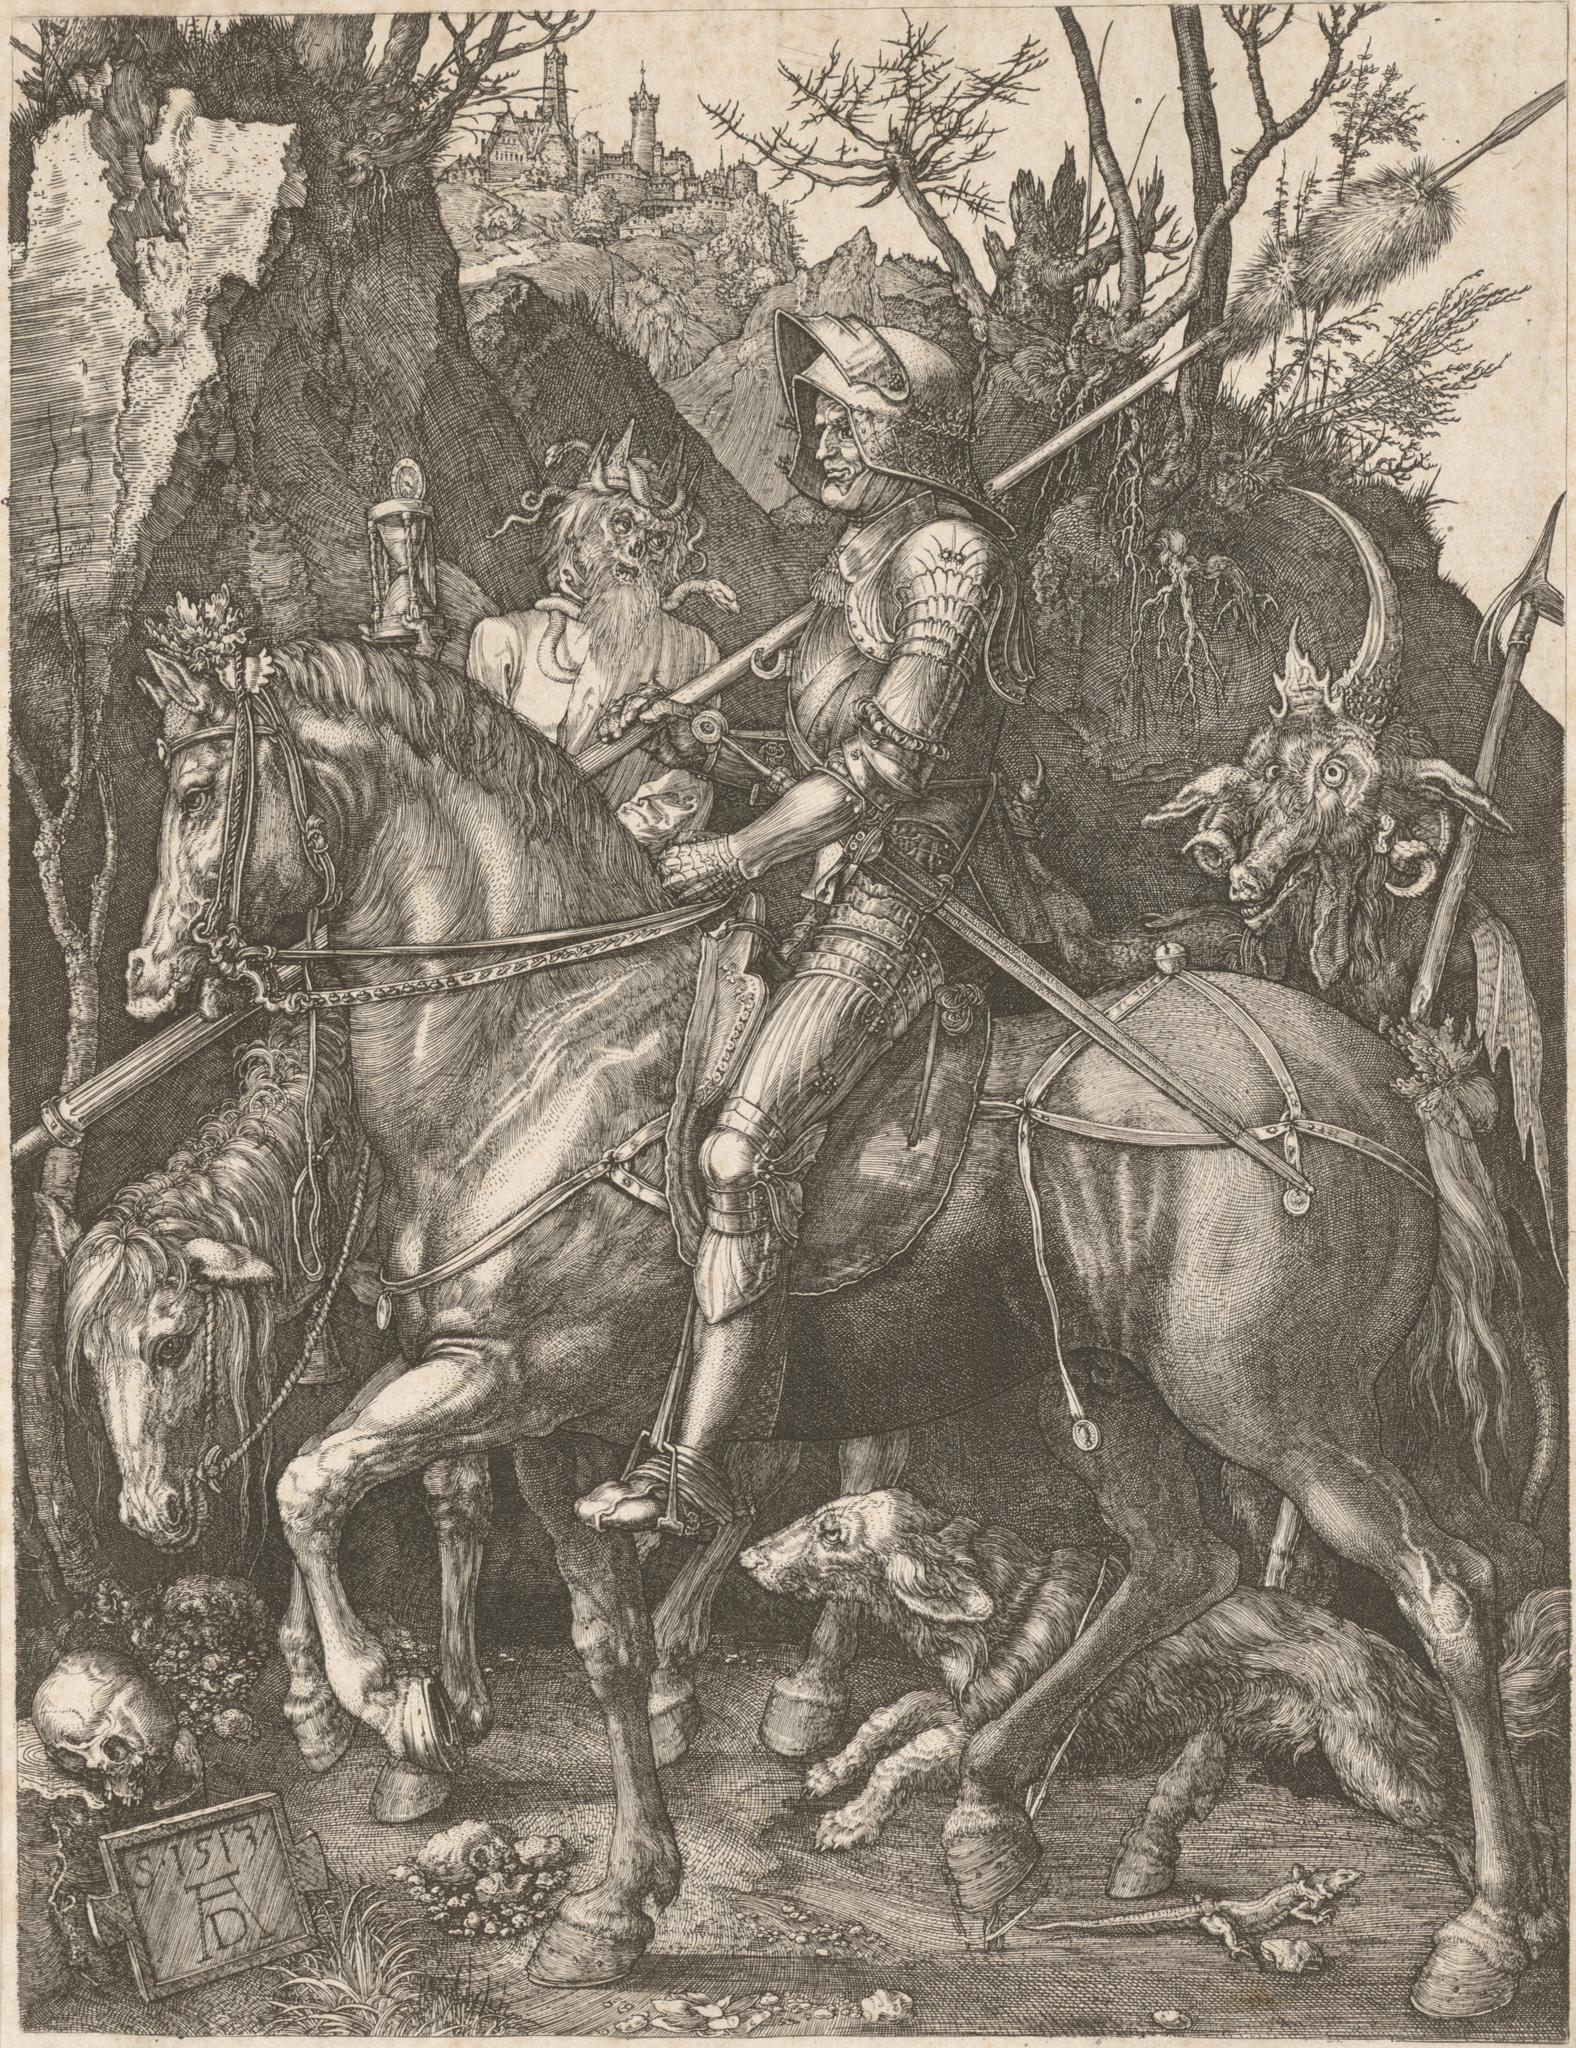 Knight, Death and the Devil, 1513